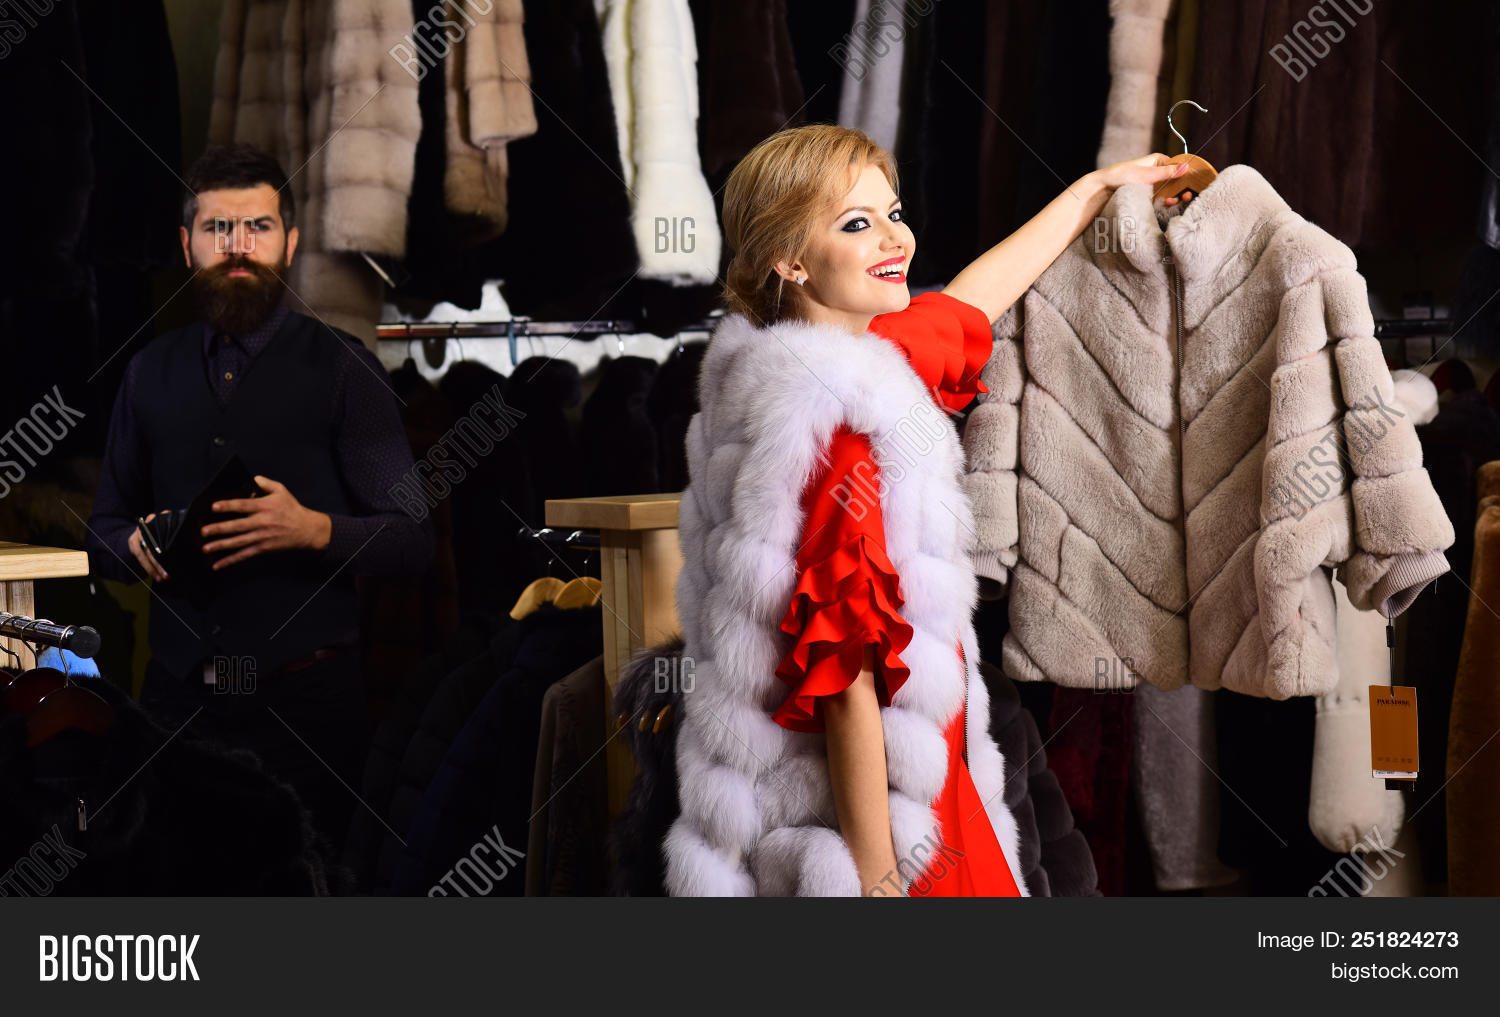 background,bearded,black,buy,client,clothes,clothing,coat,concept,couple,customer,discount,elegance,empty,expensive,face,fashion,friday,fur,girl,glamour,handsome,in,lack,looking,love,luxury,macho,mall,mink,pretty,rich,richness,sable,sale,shop,shopper,shopping,smile,smiling,style,stylish,trendy,warm,wear,white,winter,woman,worried,young